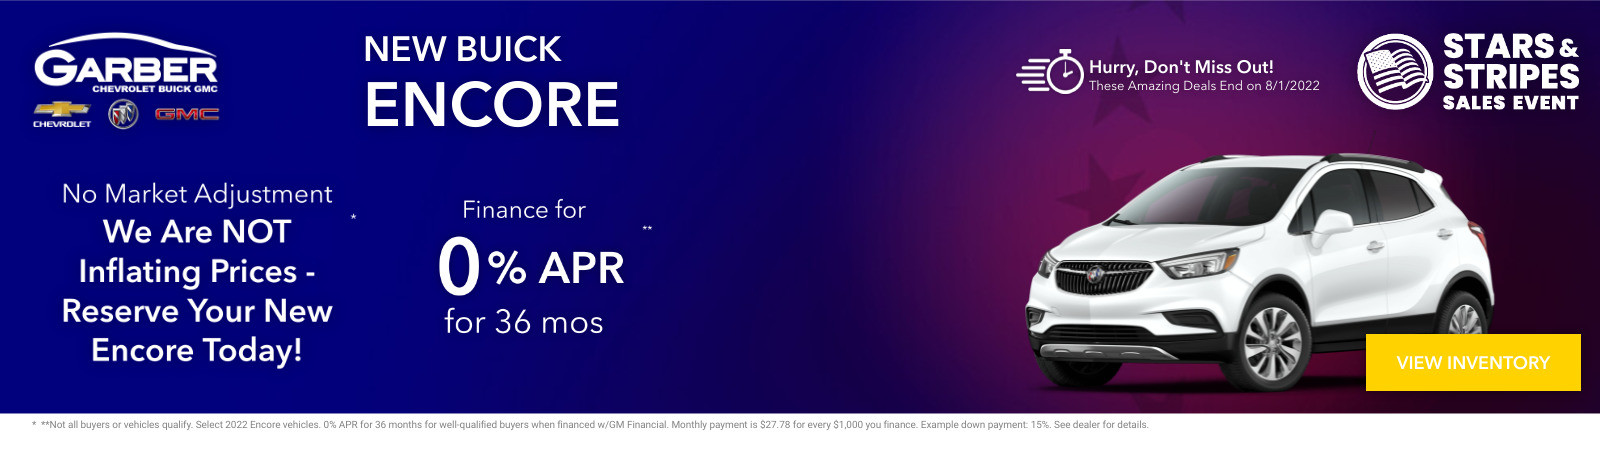 New Buick Encore Current Deals and Offers in Green Cove Springs, FL